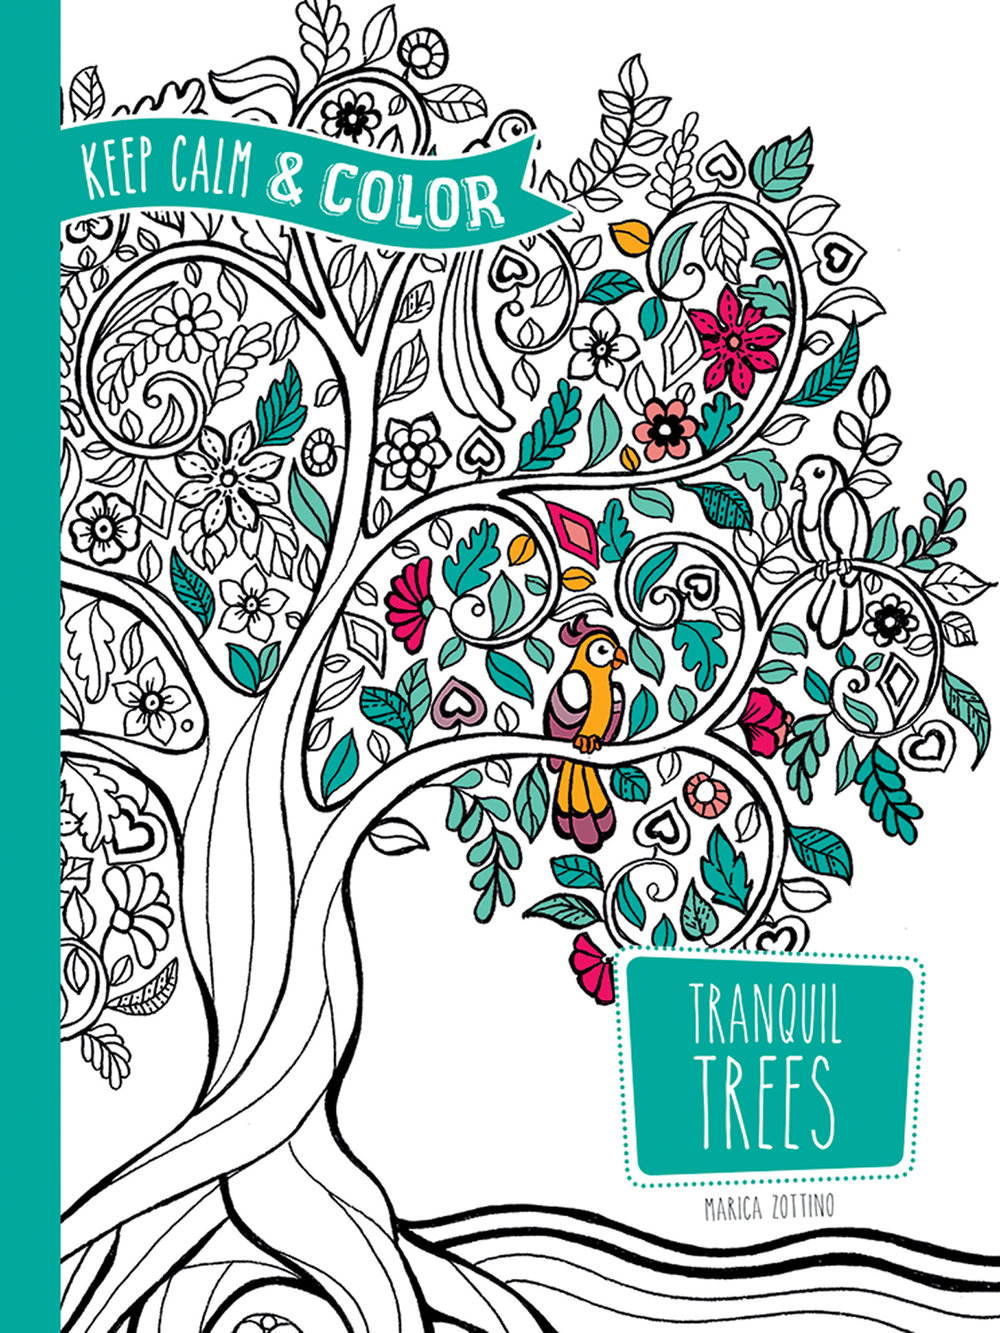 Keep Calm & Color - Tranquil Trees Adult Coloring Book